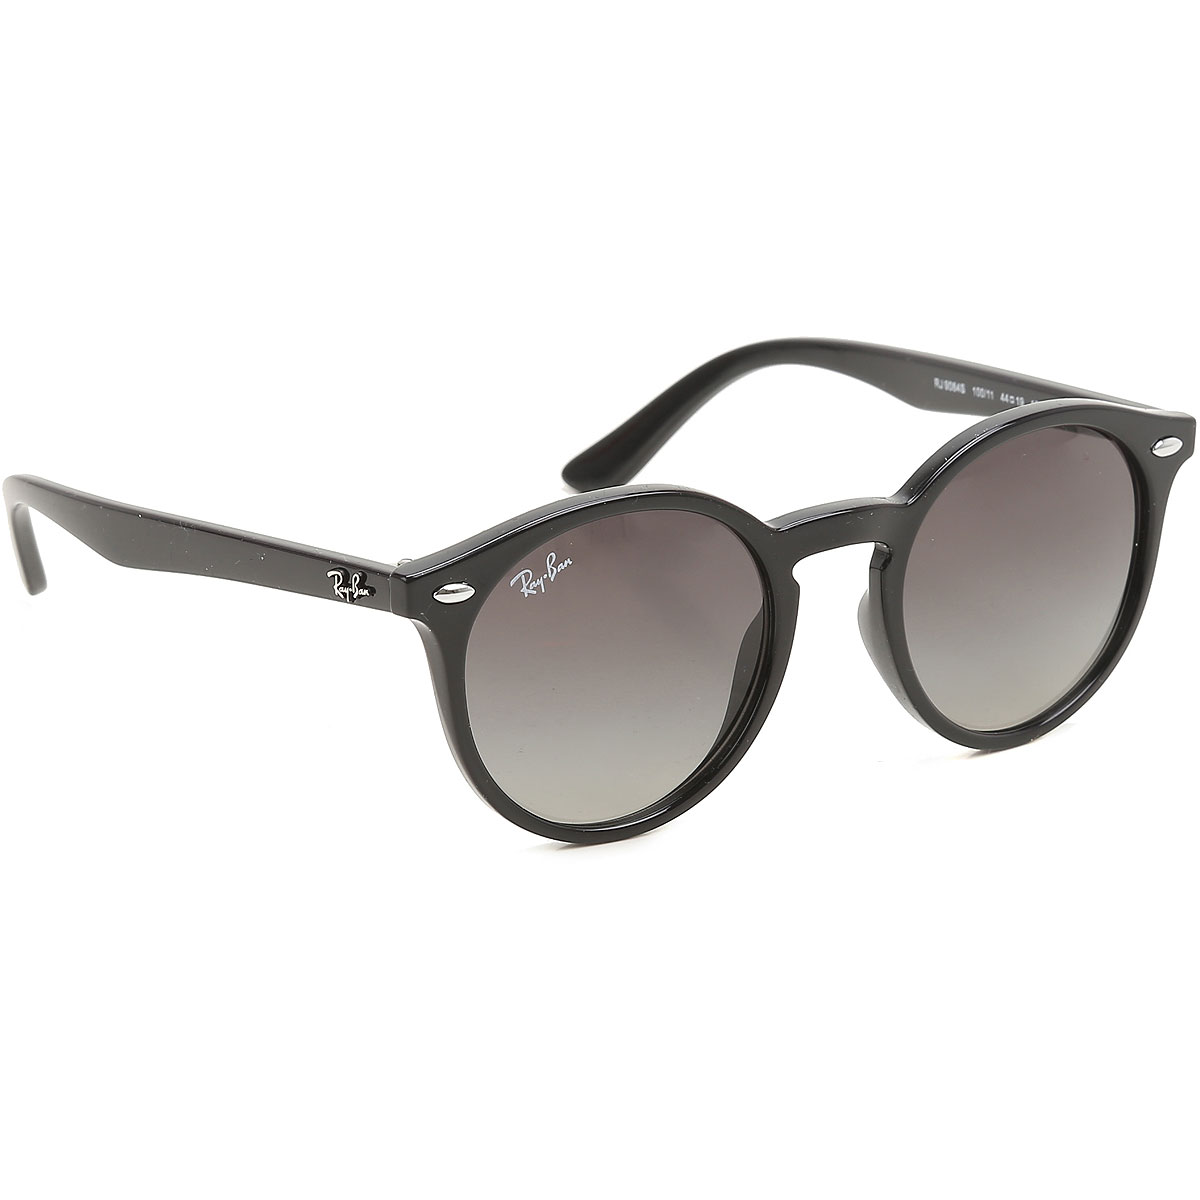 Image of Ray Ban Junior Kids Sunglasses for Boys On Sale, Black, 2017